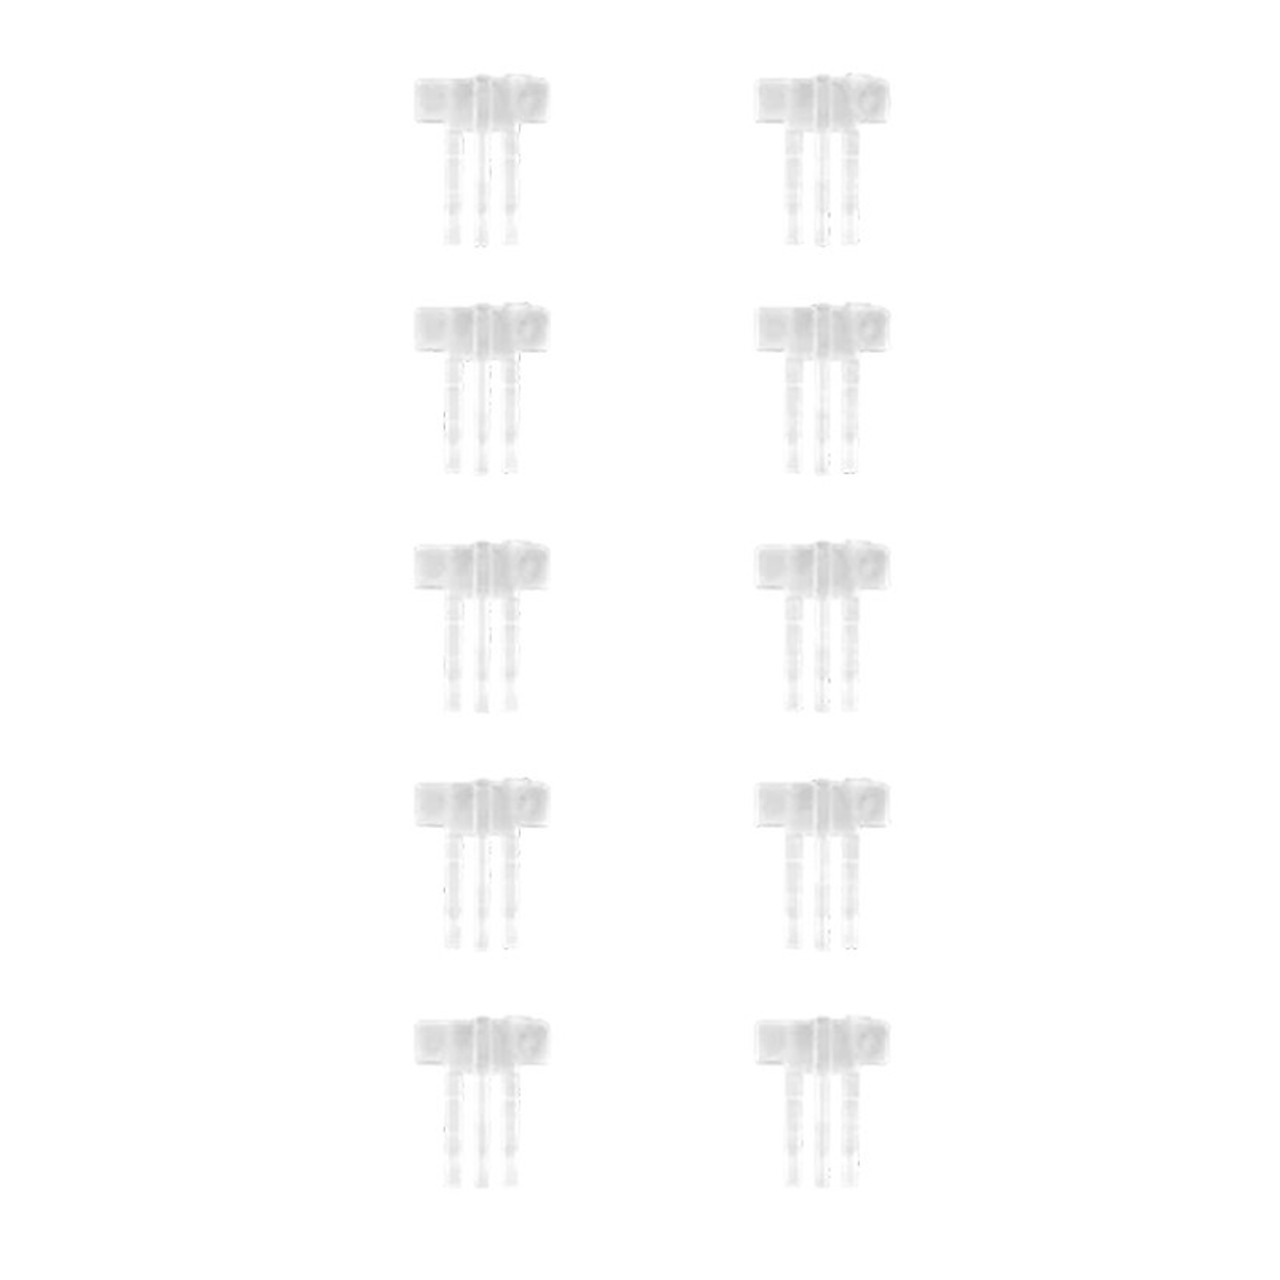 Image for Jabra Quick Disconnect Cord Lock - 10 Pack CX Computer Superstore